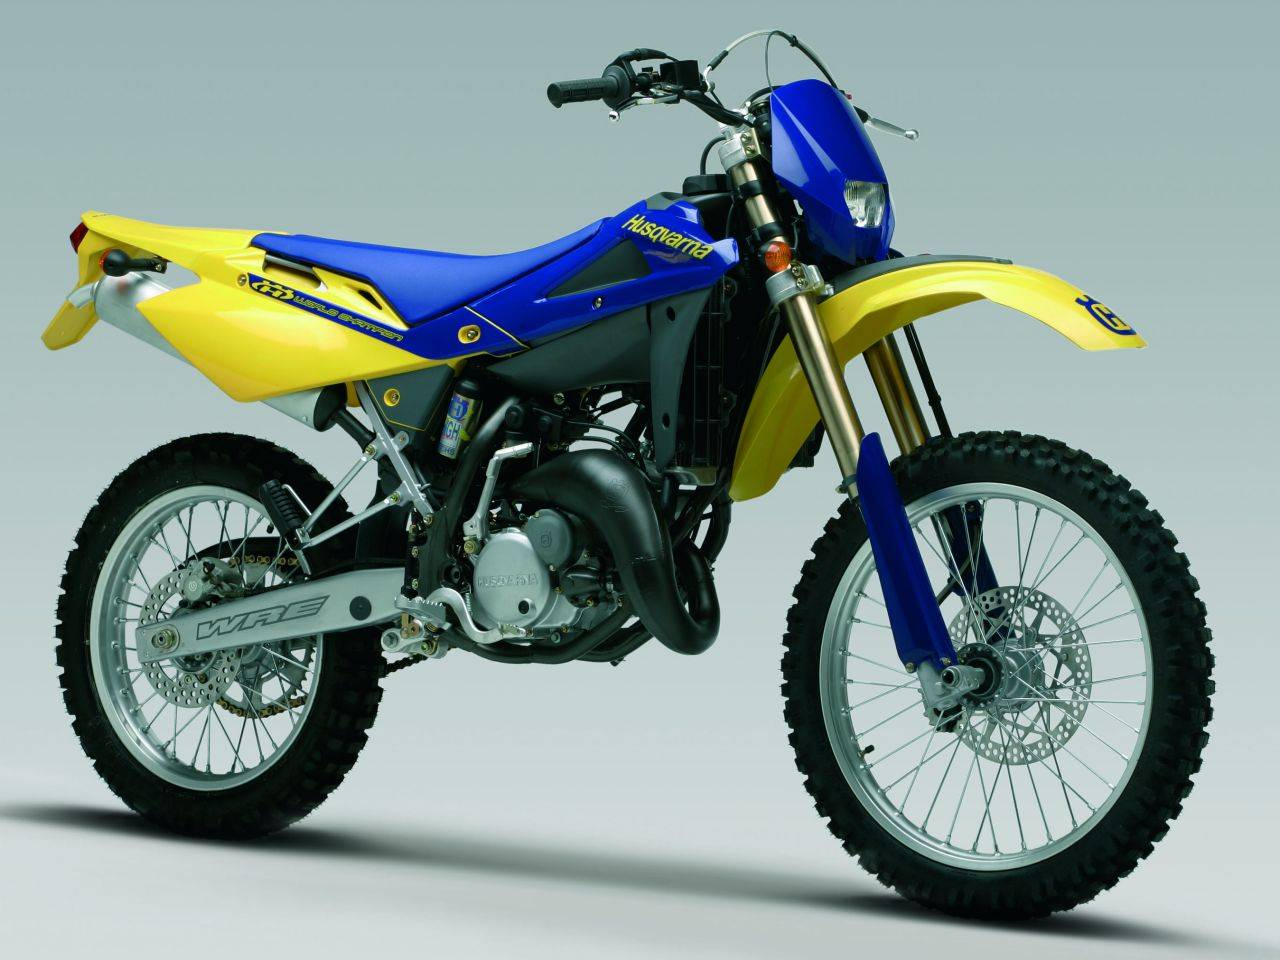 husqvarna wre 125 2006 motorcycles specifications. Black Bedroom Furniture Sets. Home Design Ideas